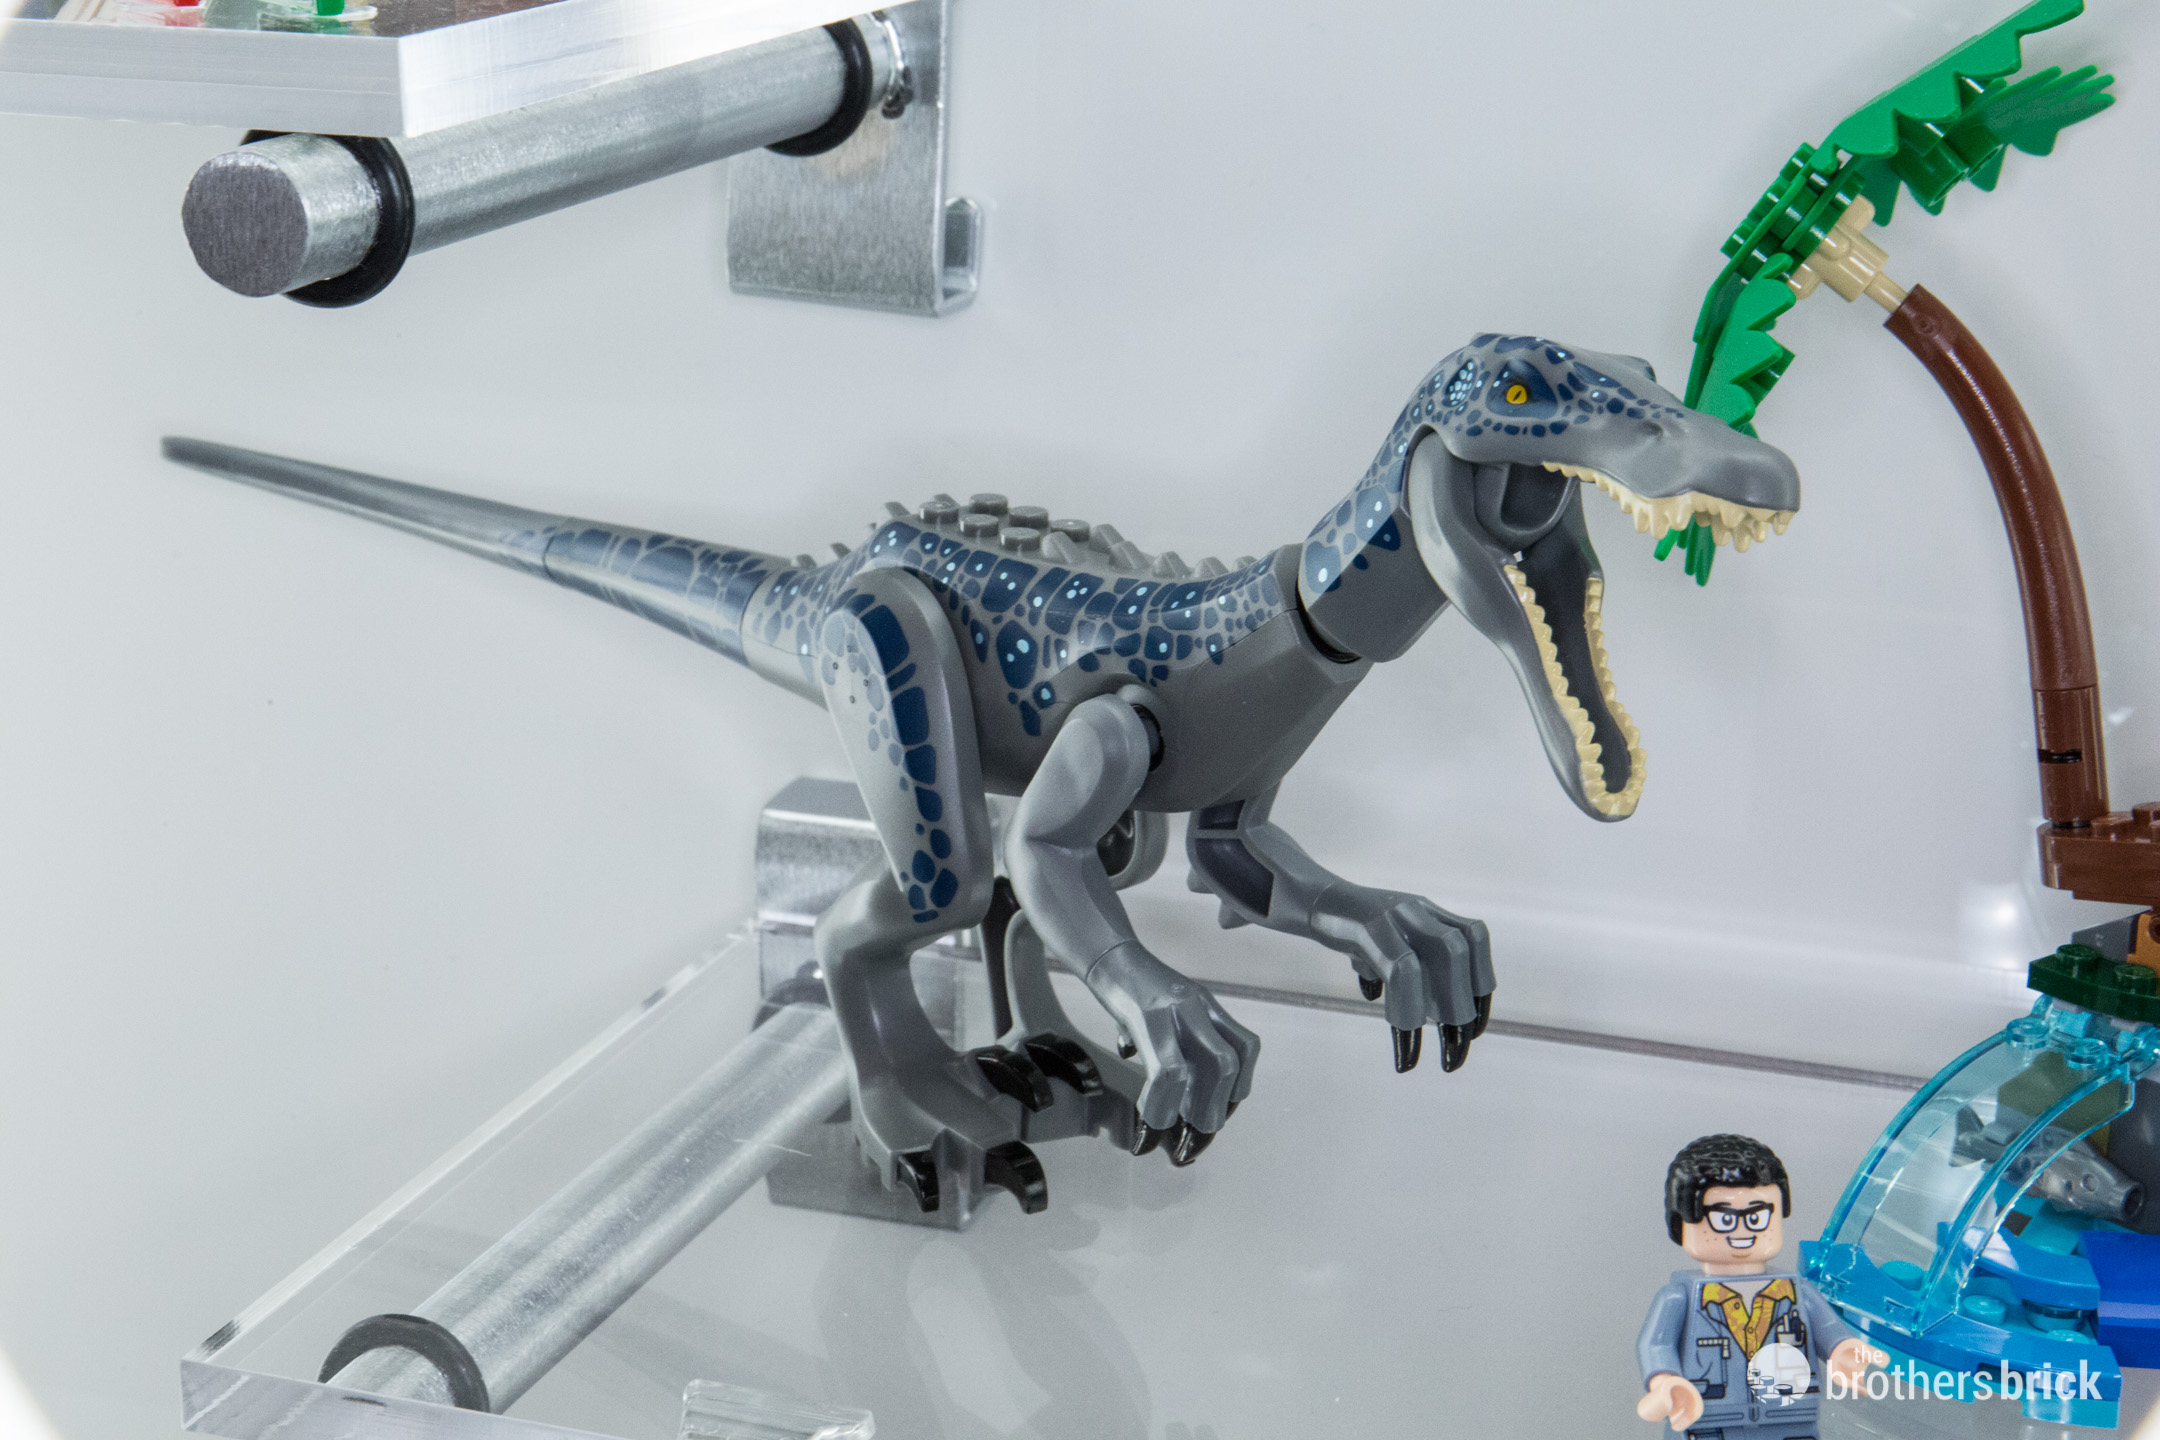 LEGO Jurassic World sets in-person at the 2019 New York Toy